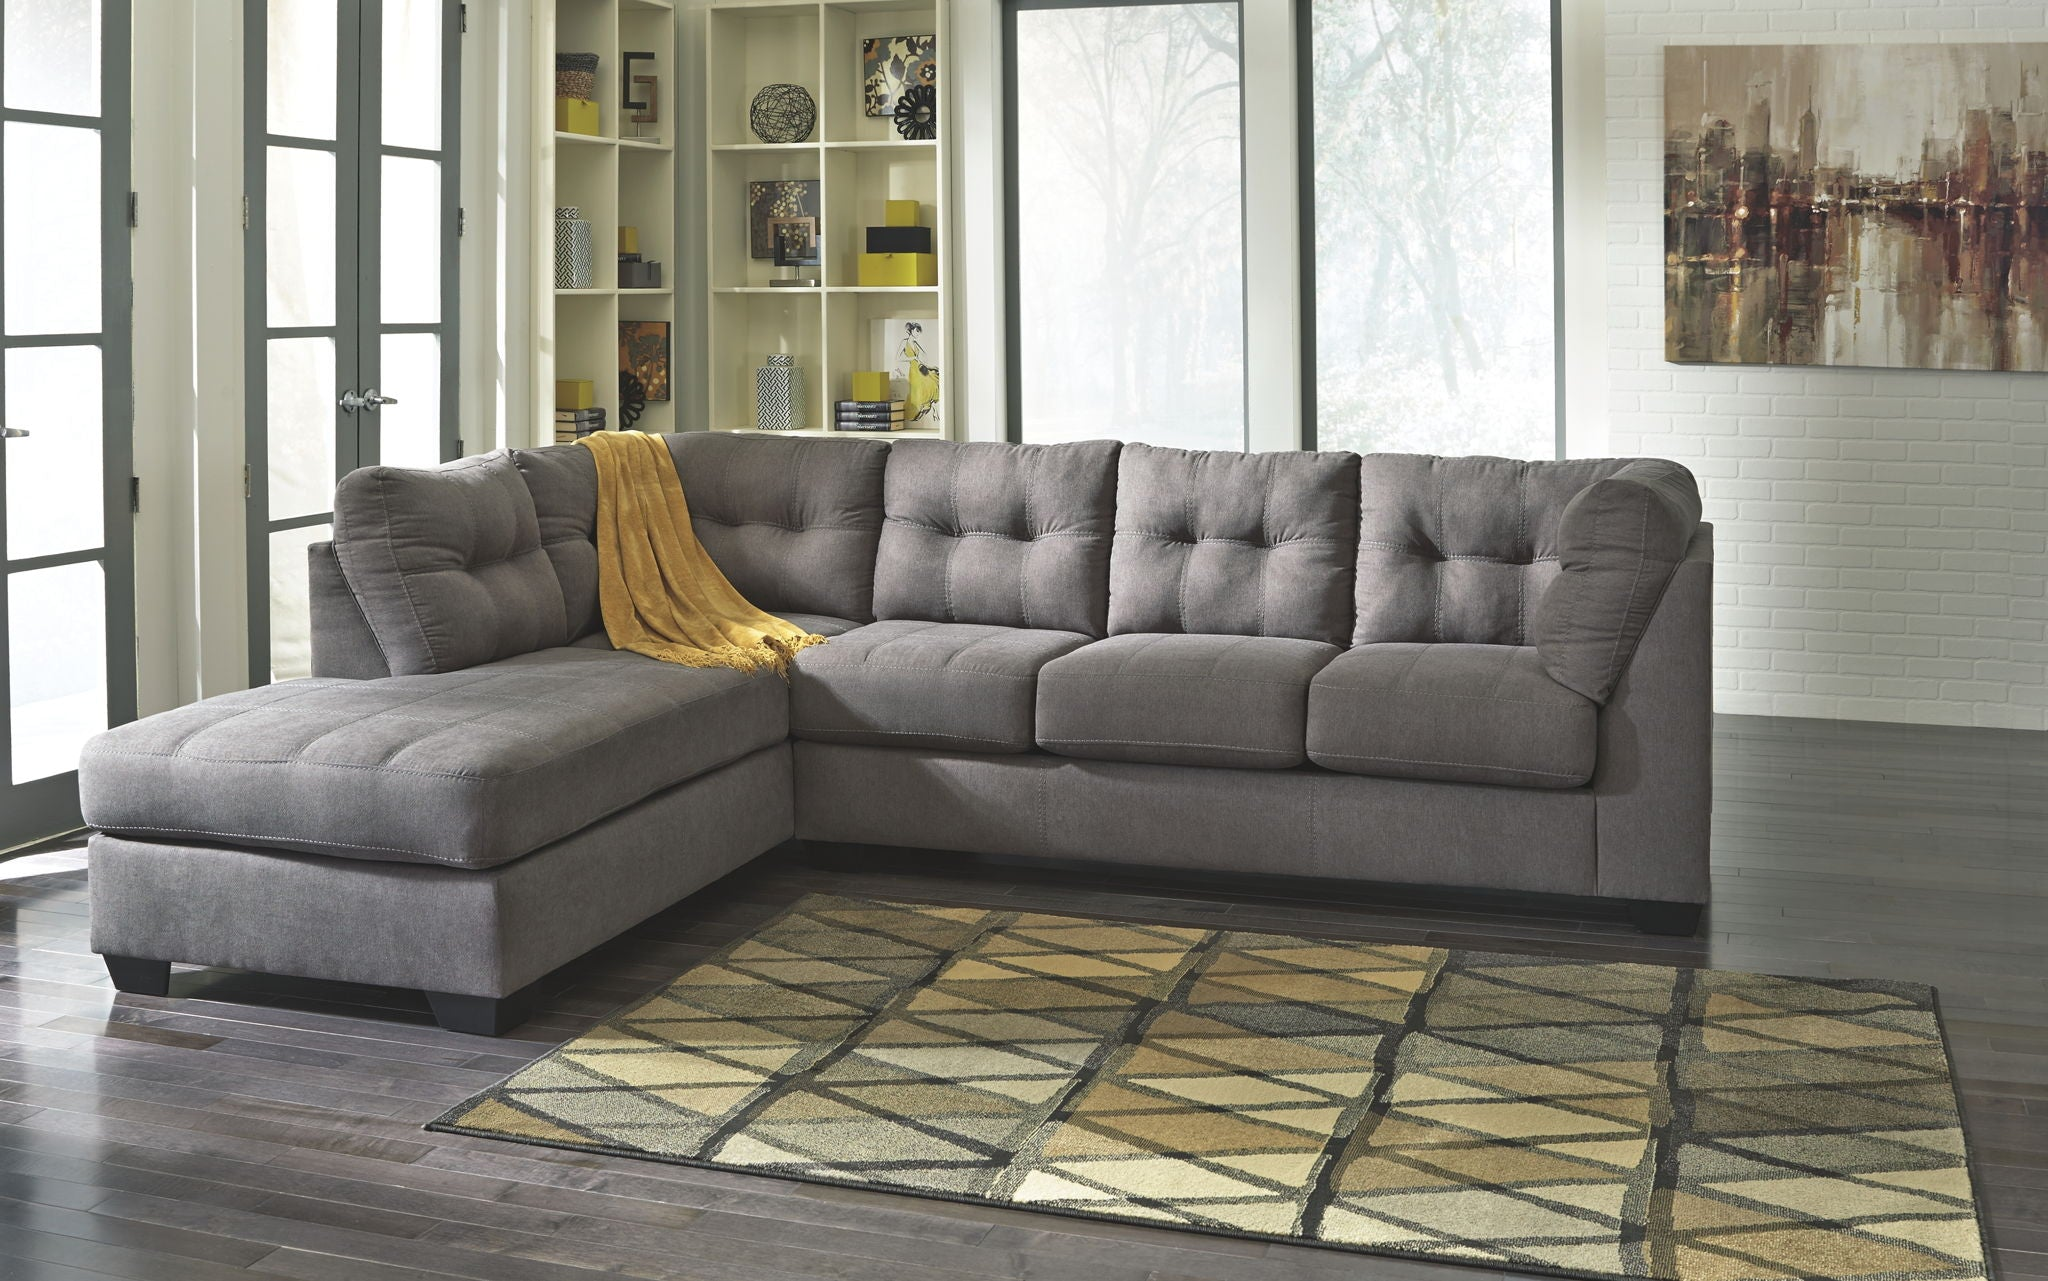 Maier Sectional with Chaise | Calgary's Furniture Store